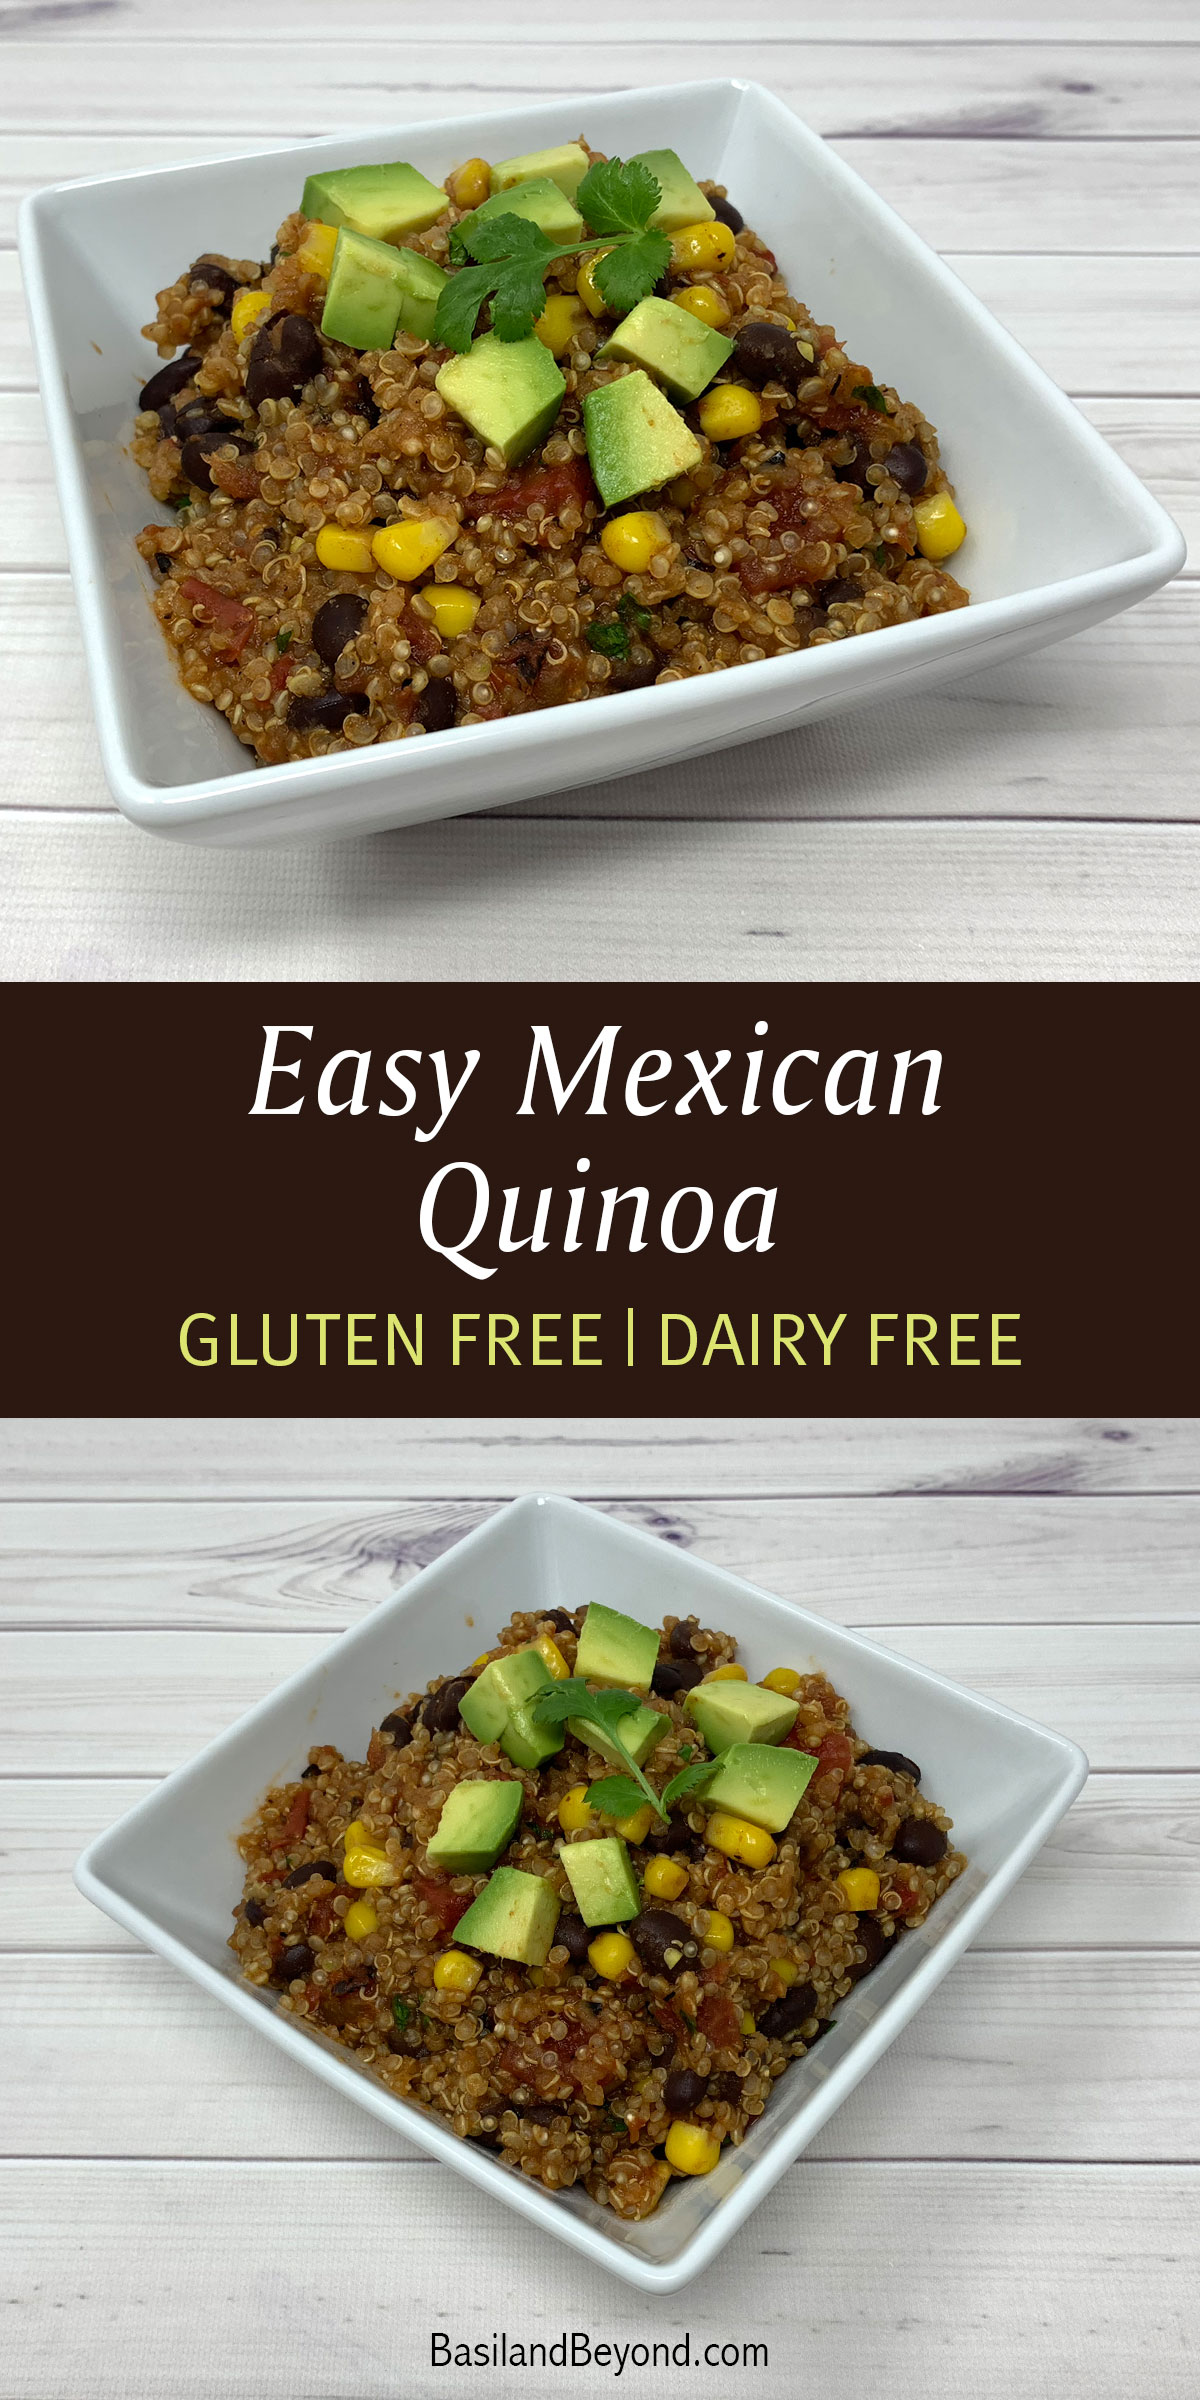 Easy Mexican Quinoa